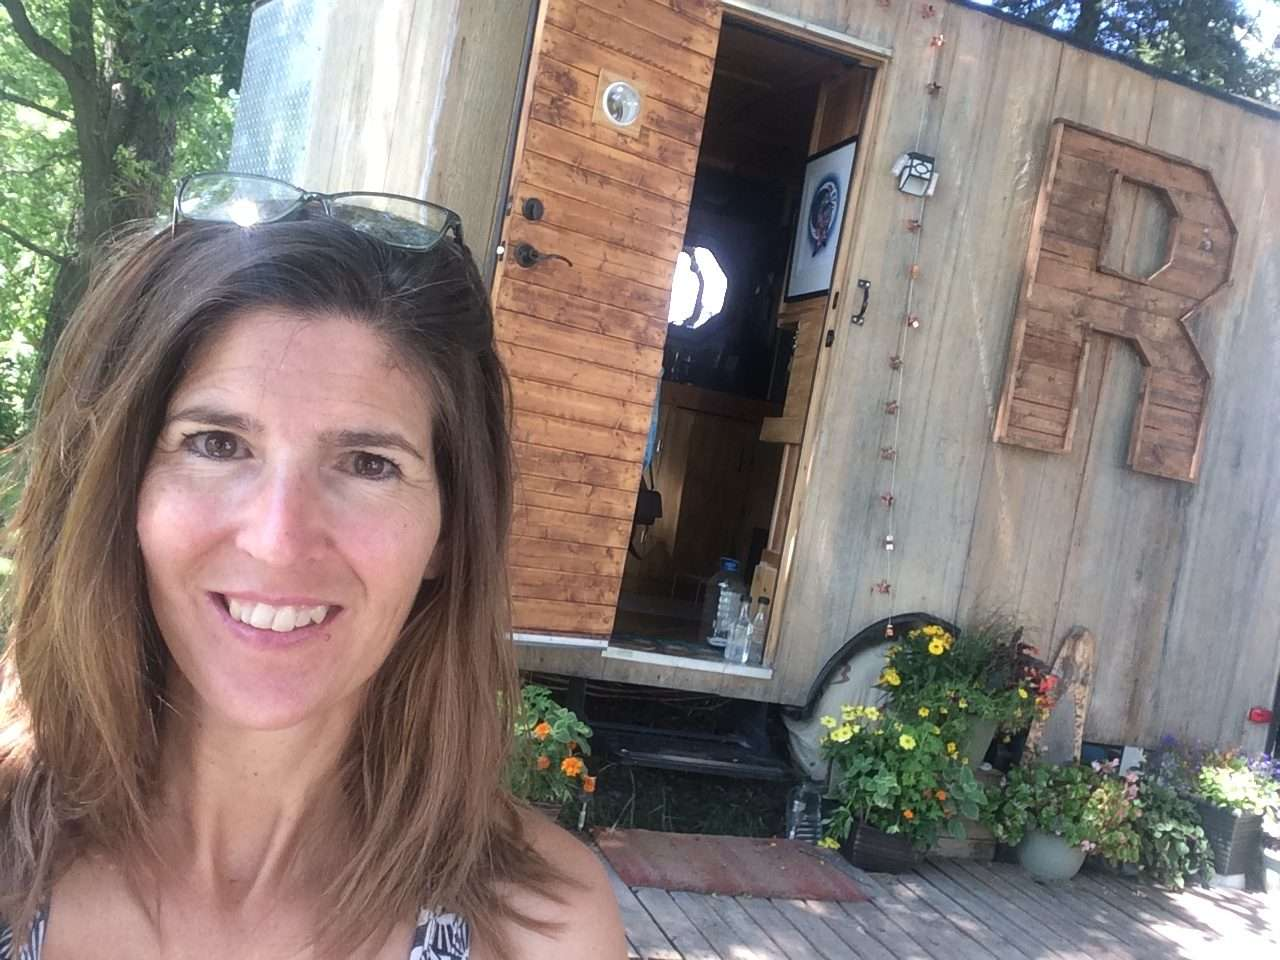 head and shoulder photo of a woman smiling standing in front of a tiny house on wheels with a big R on it